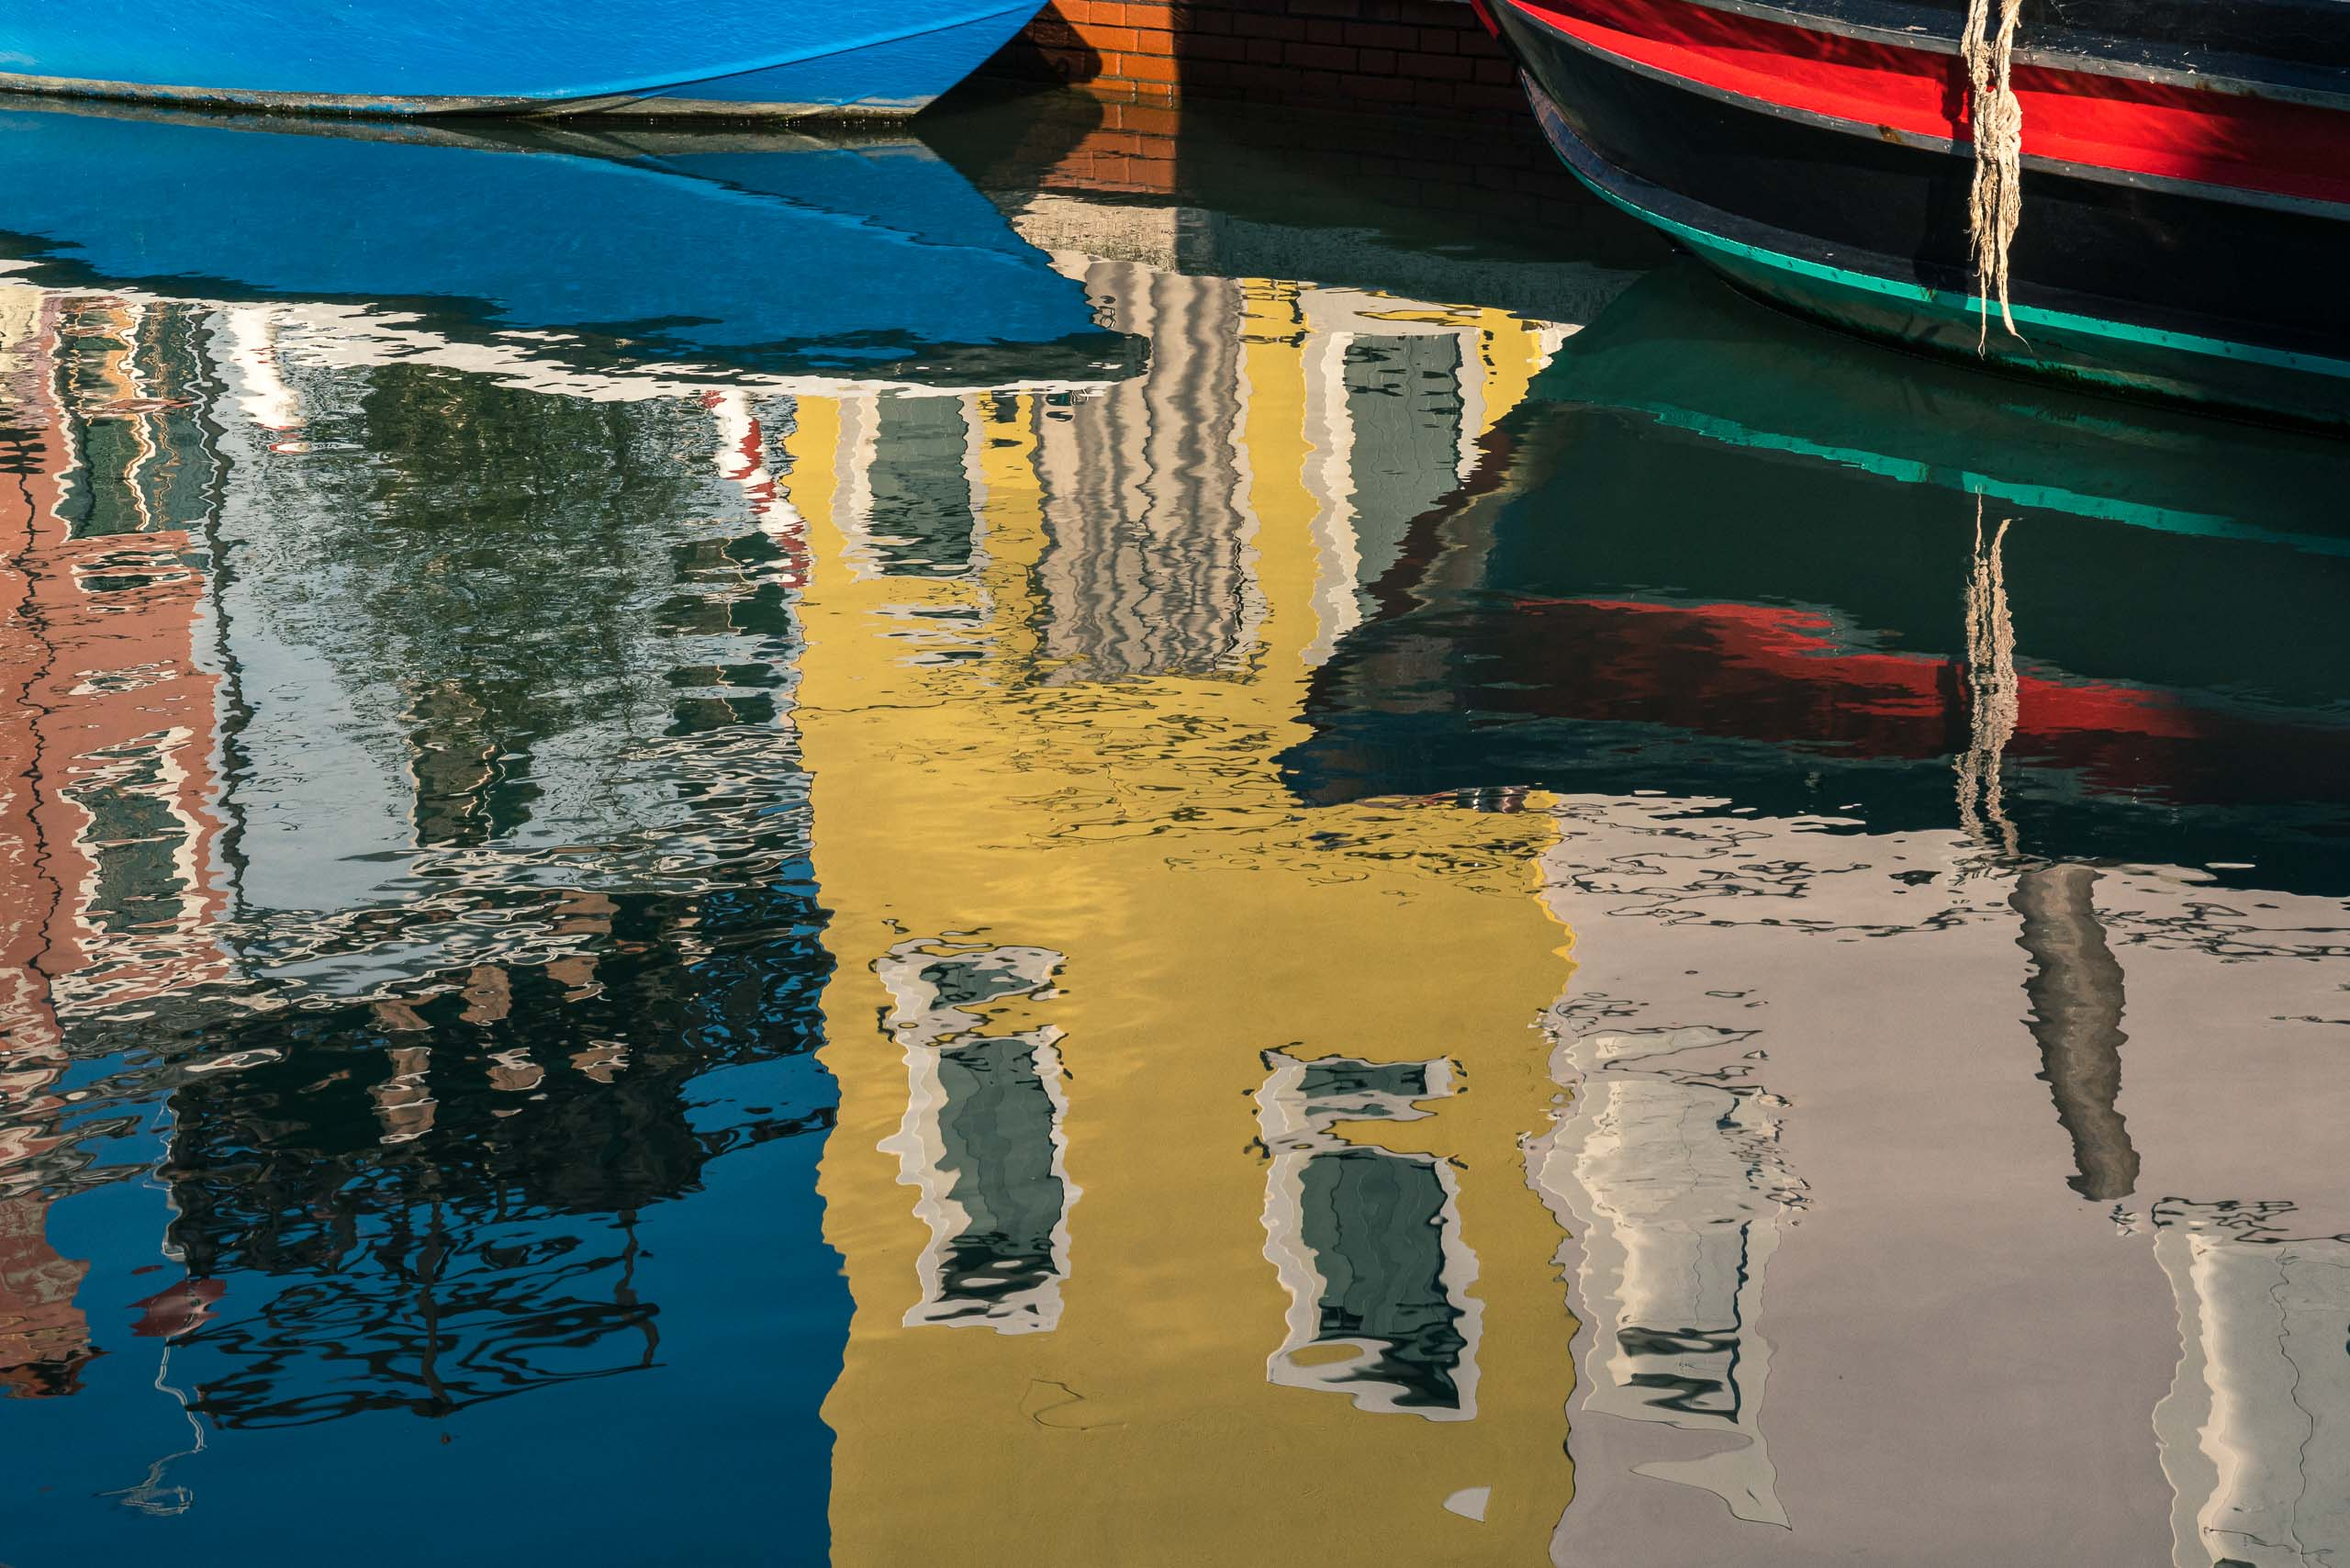 Travel and street photography of Murano, Venice or Venezia, Italy made by New York photographer Mary Catherine Messner (mcmessner).